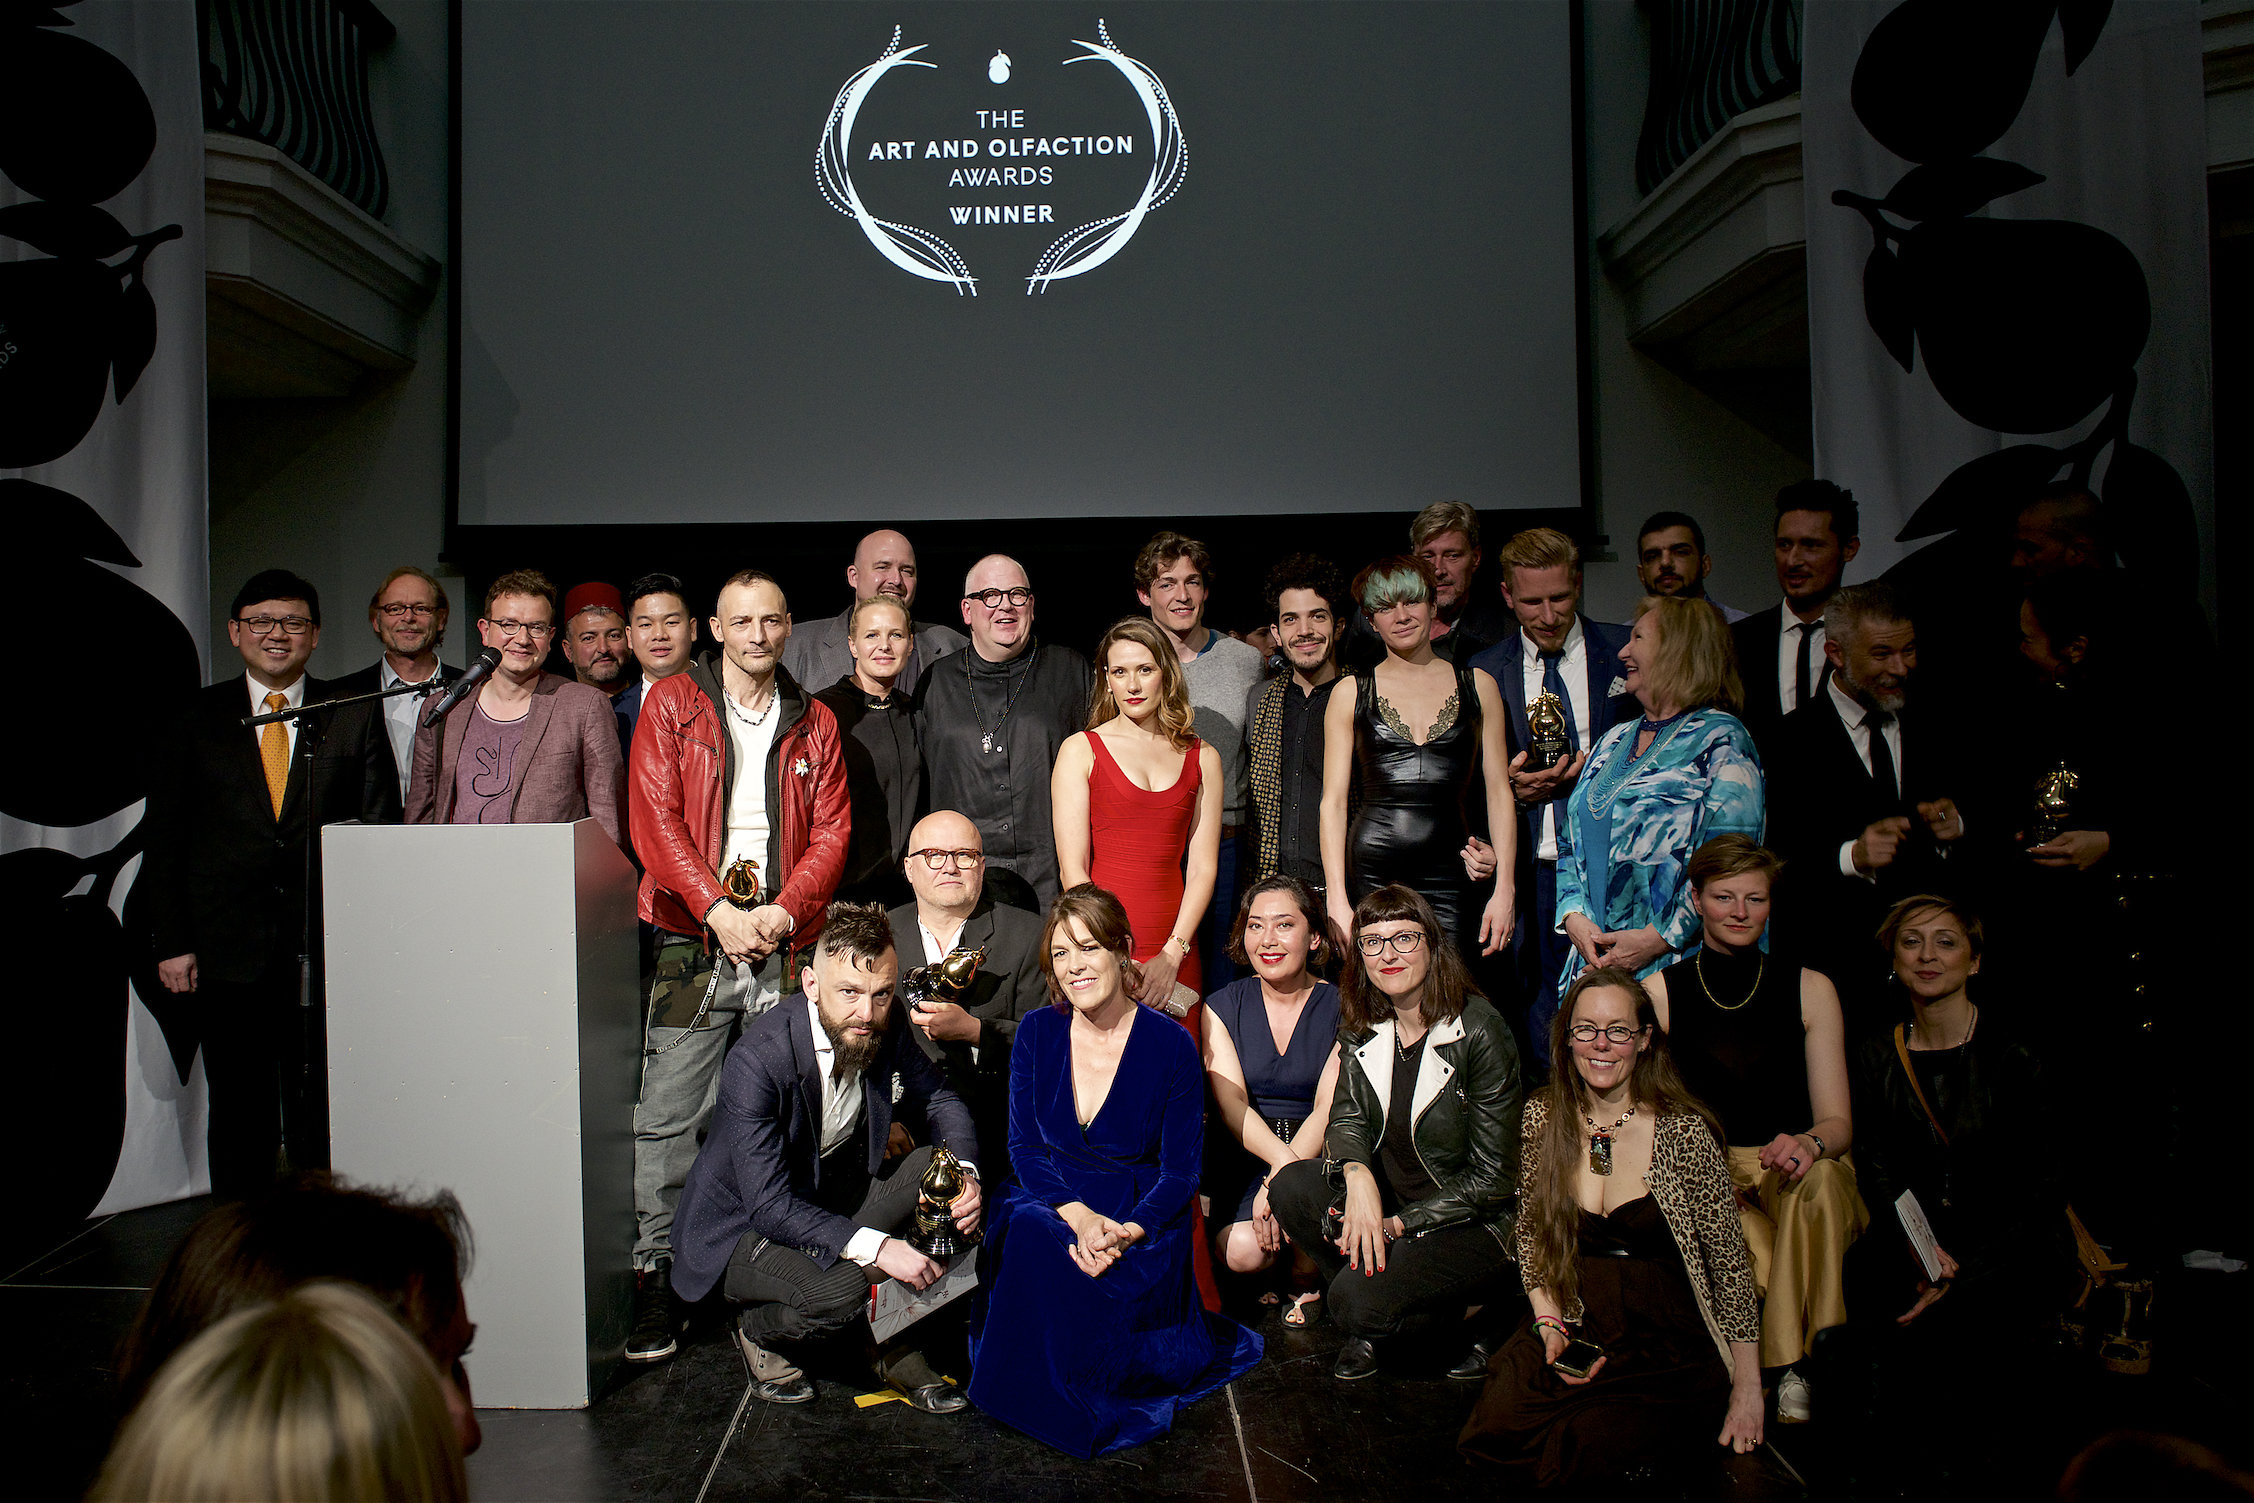 Winners and Nominees at the Art and Olfaction Award